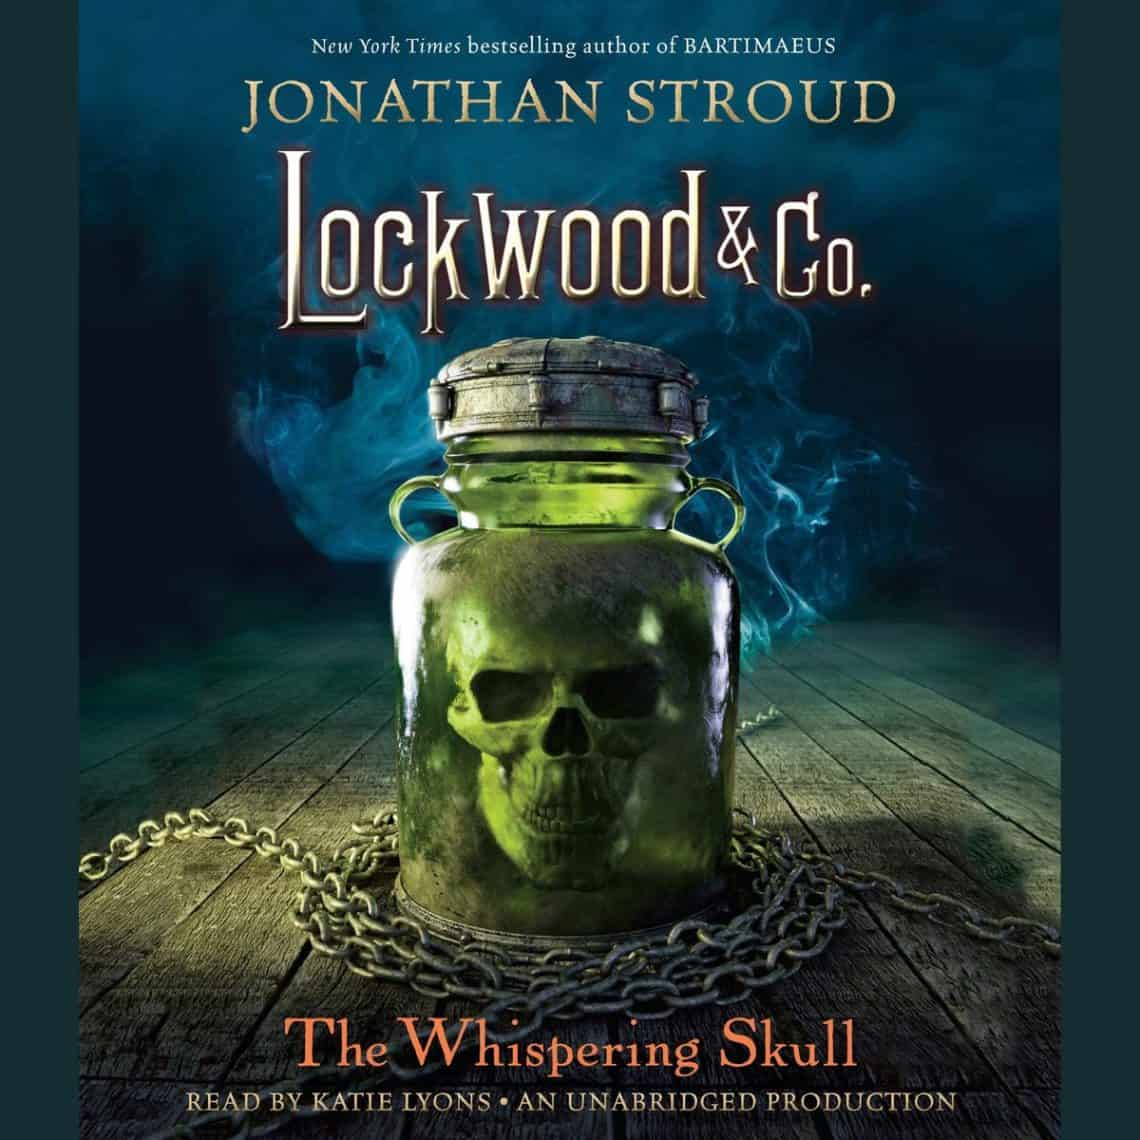 The Whispering Skull Audiobook Free by Jonathan Stroud